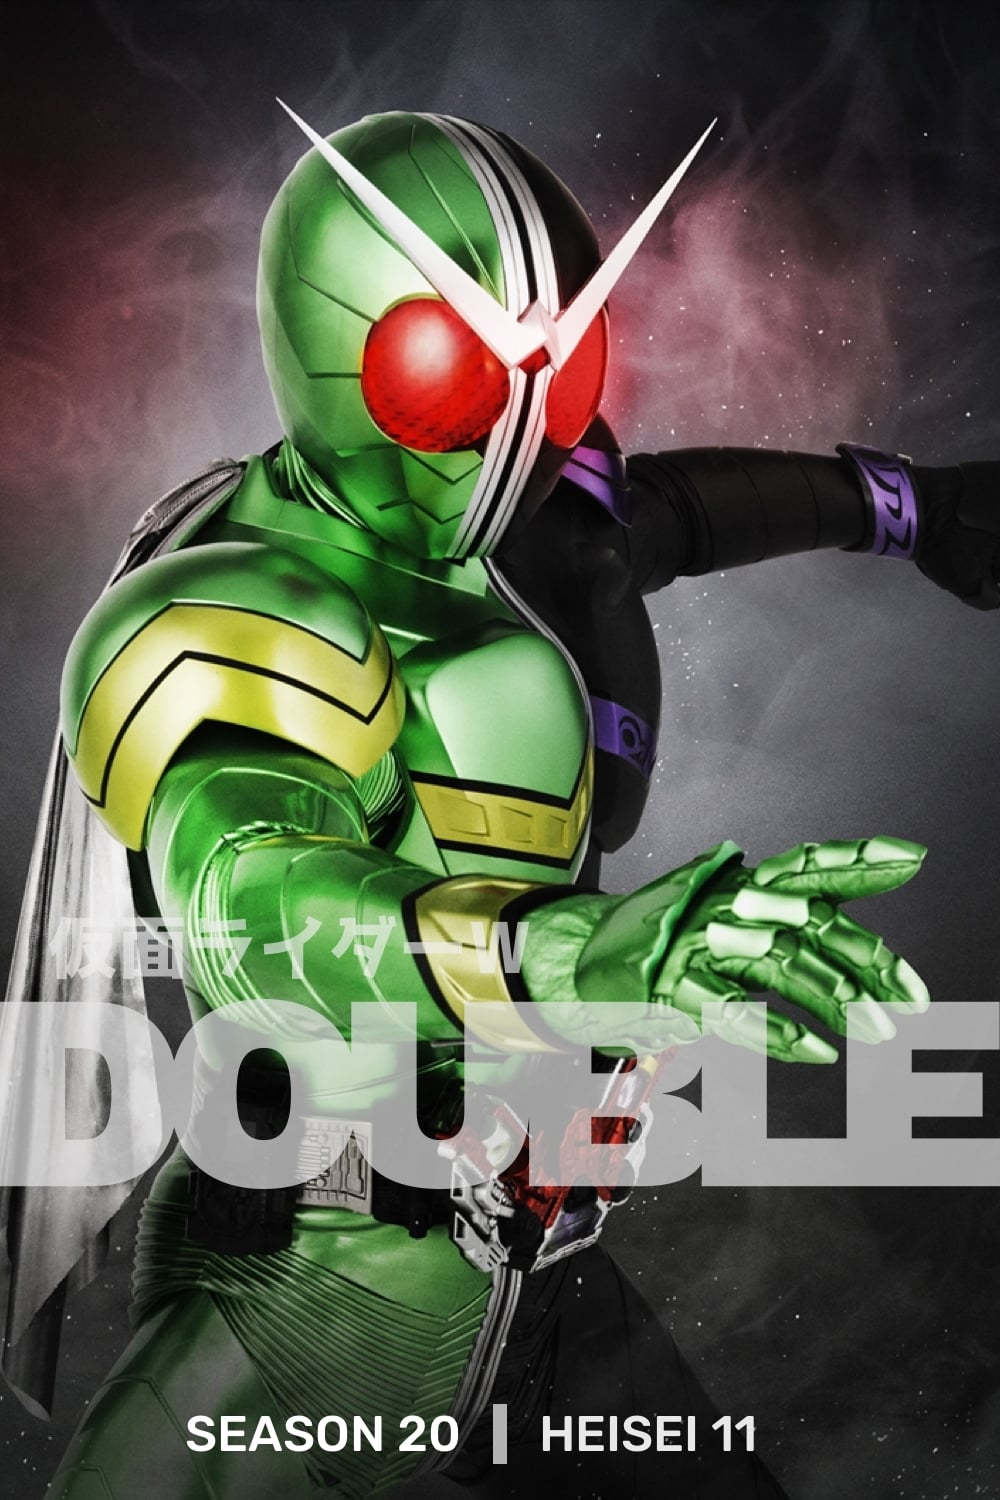 Kamen Rider - Season 21 Episode 2 : Greed, Ice Candy, Present Season 20